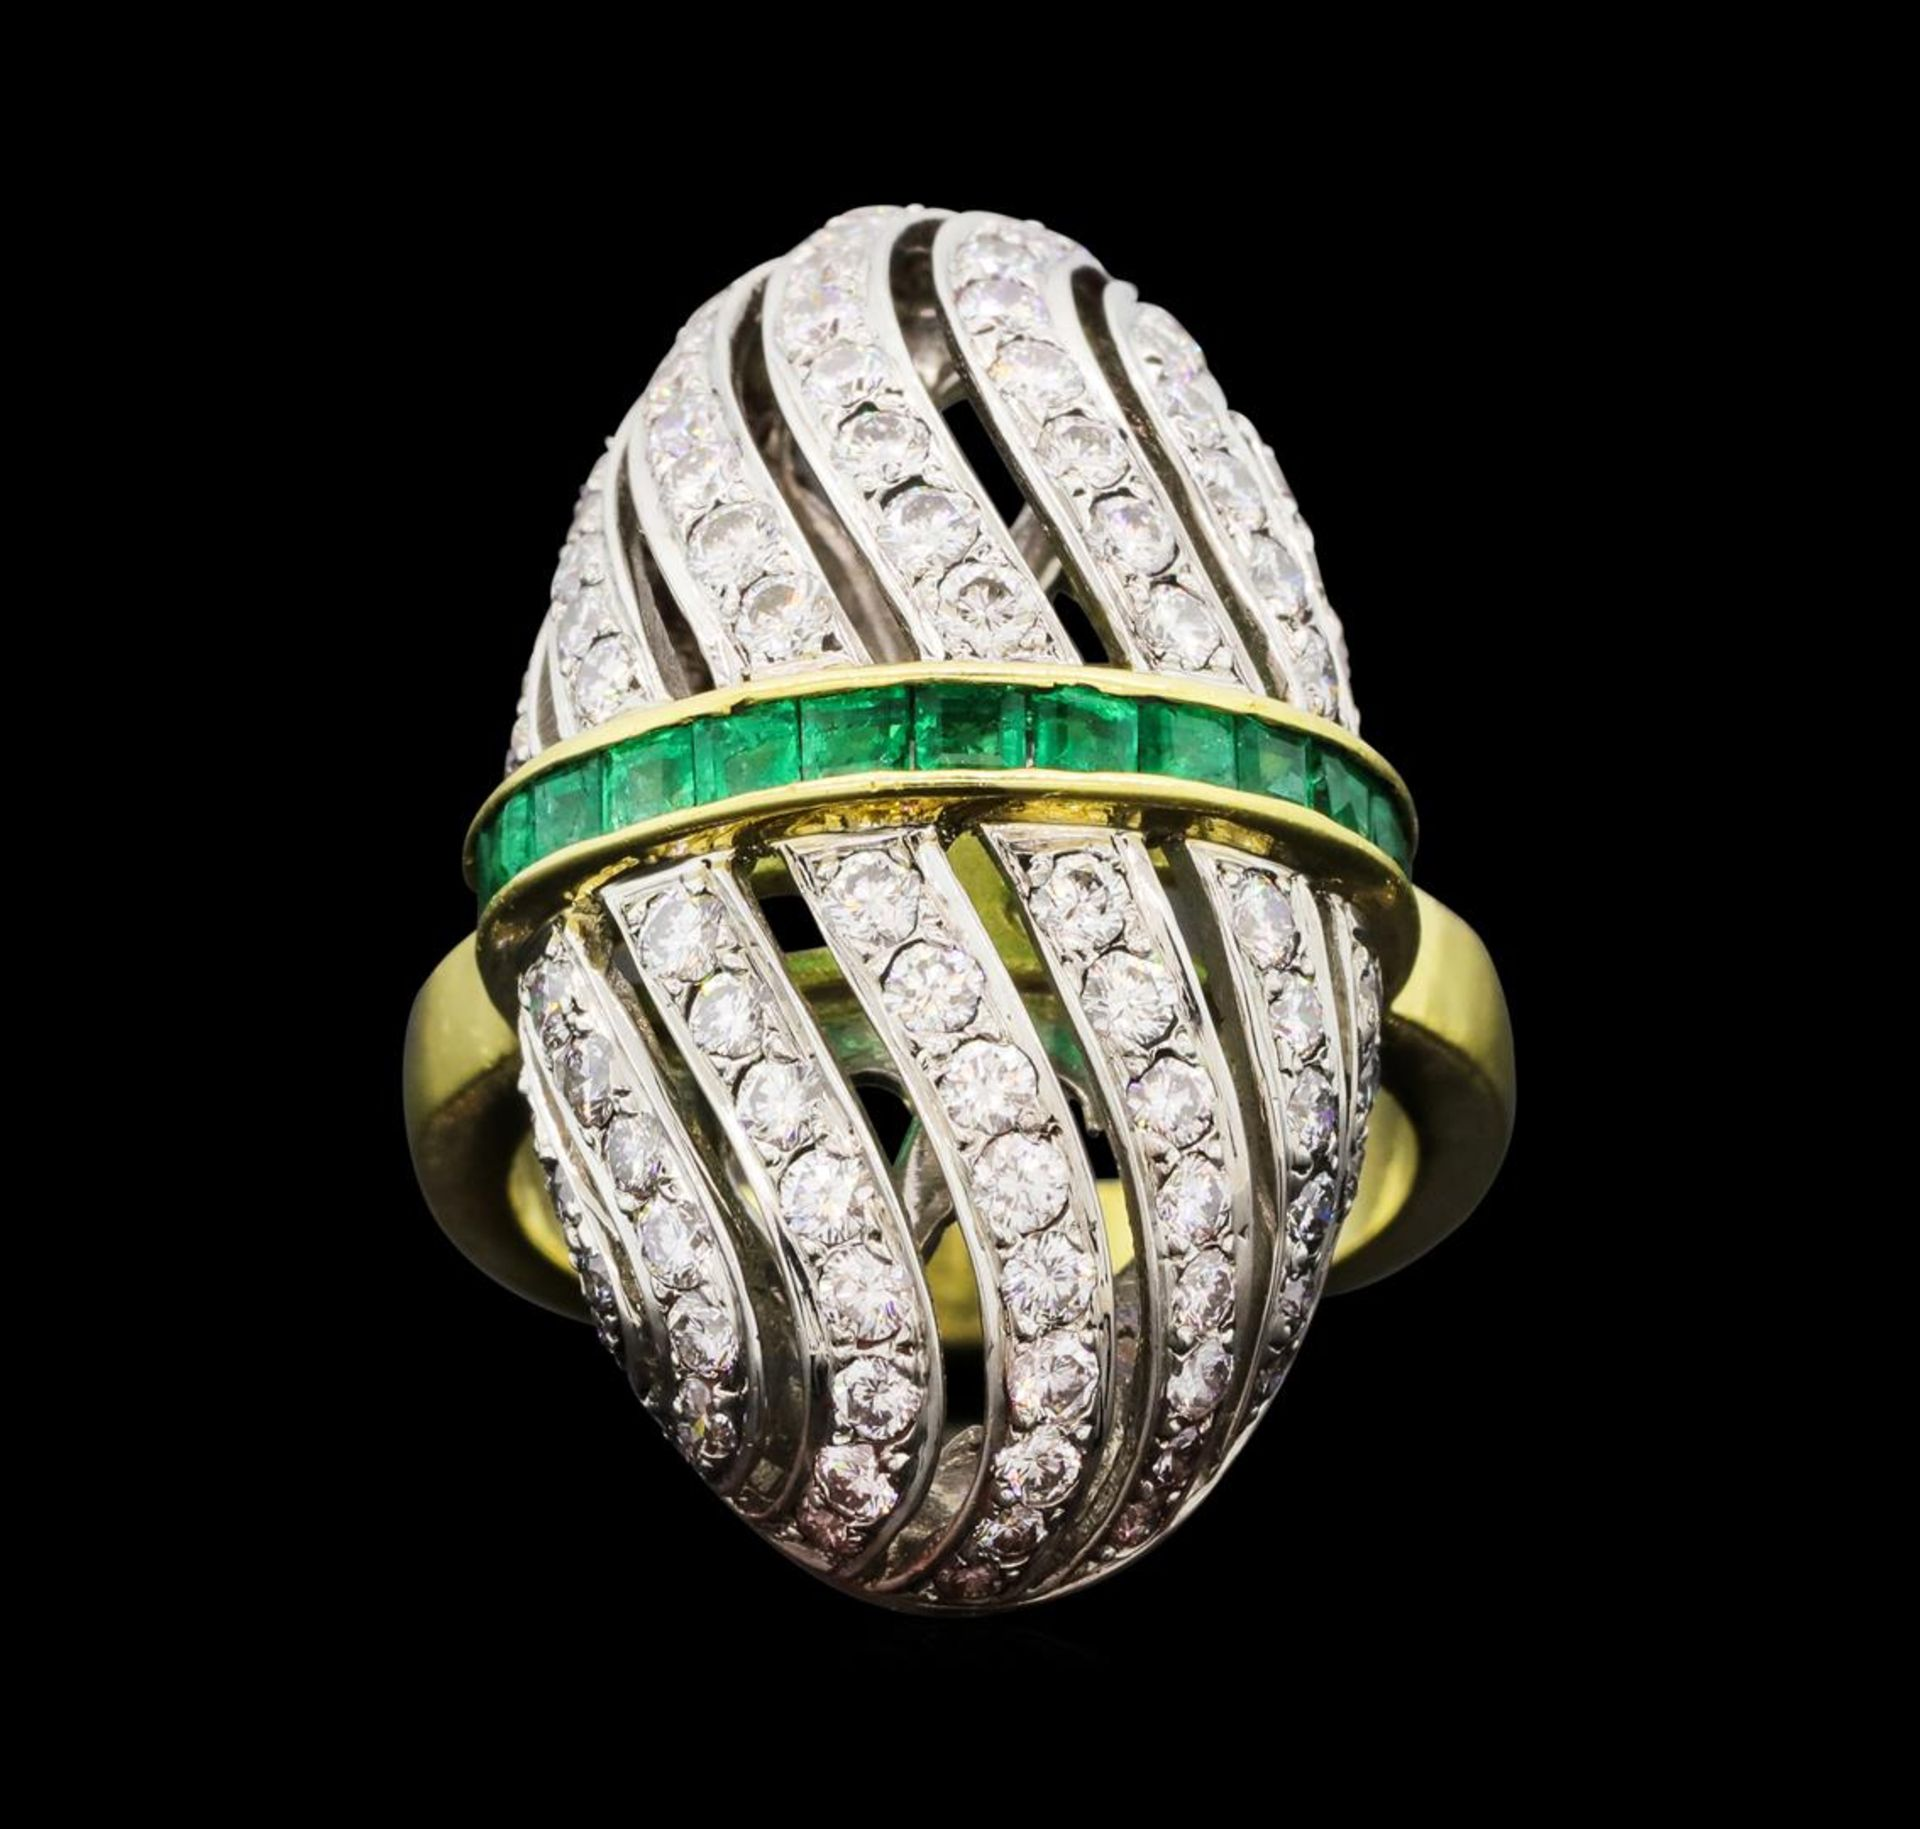 1.81 ctw Diamond and Emerald Ring - 18KT Yellow and White Gold - Image 2 of 5